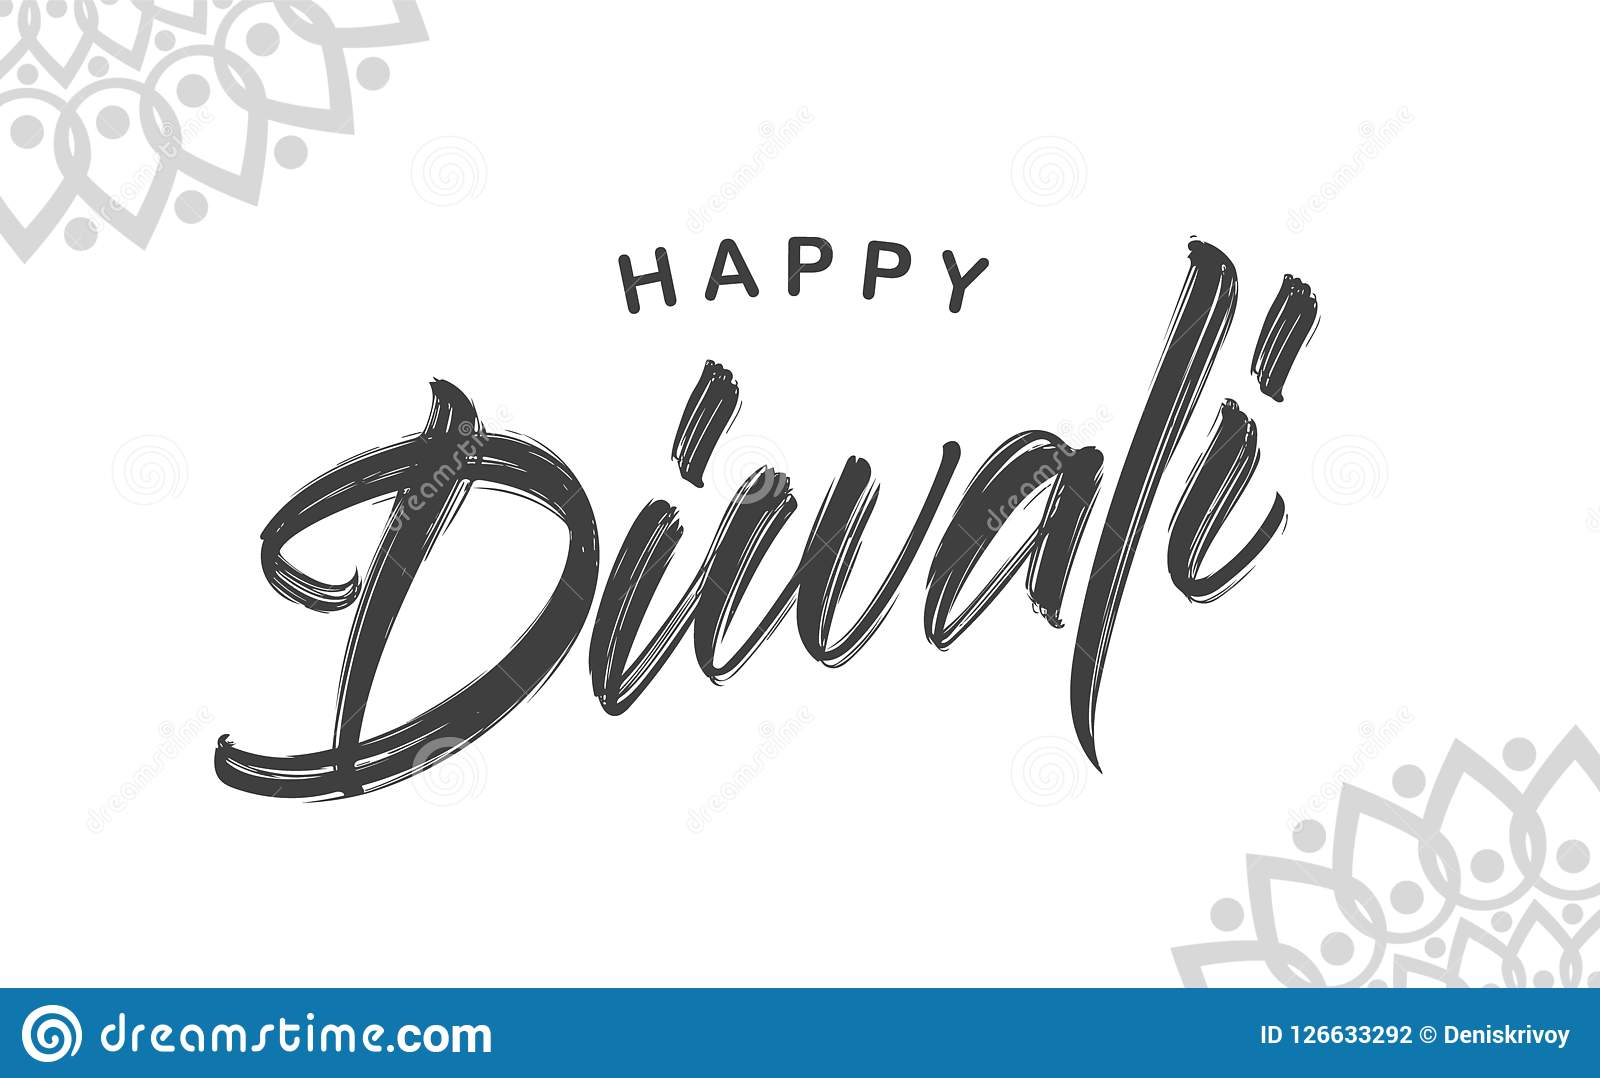 Hand drawn brush type lettering of happy diwali on white background